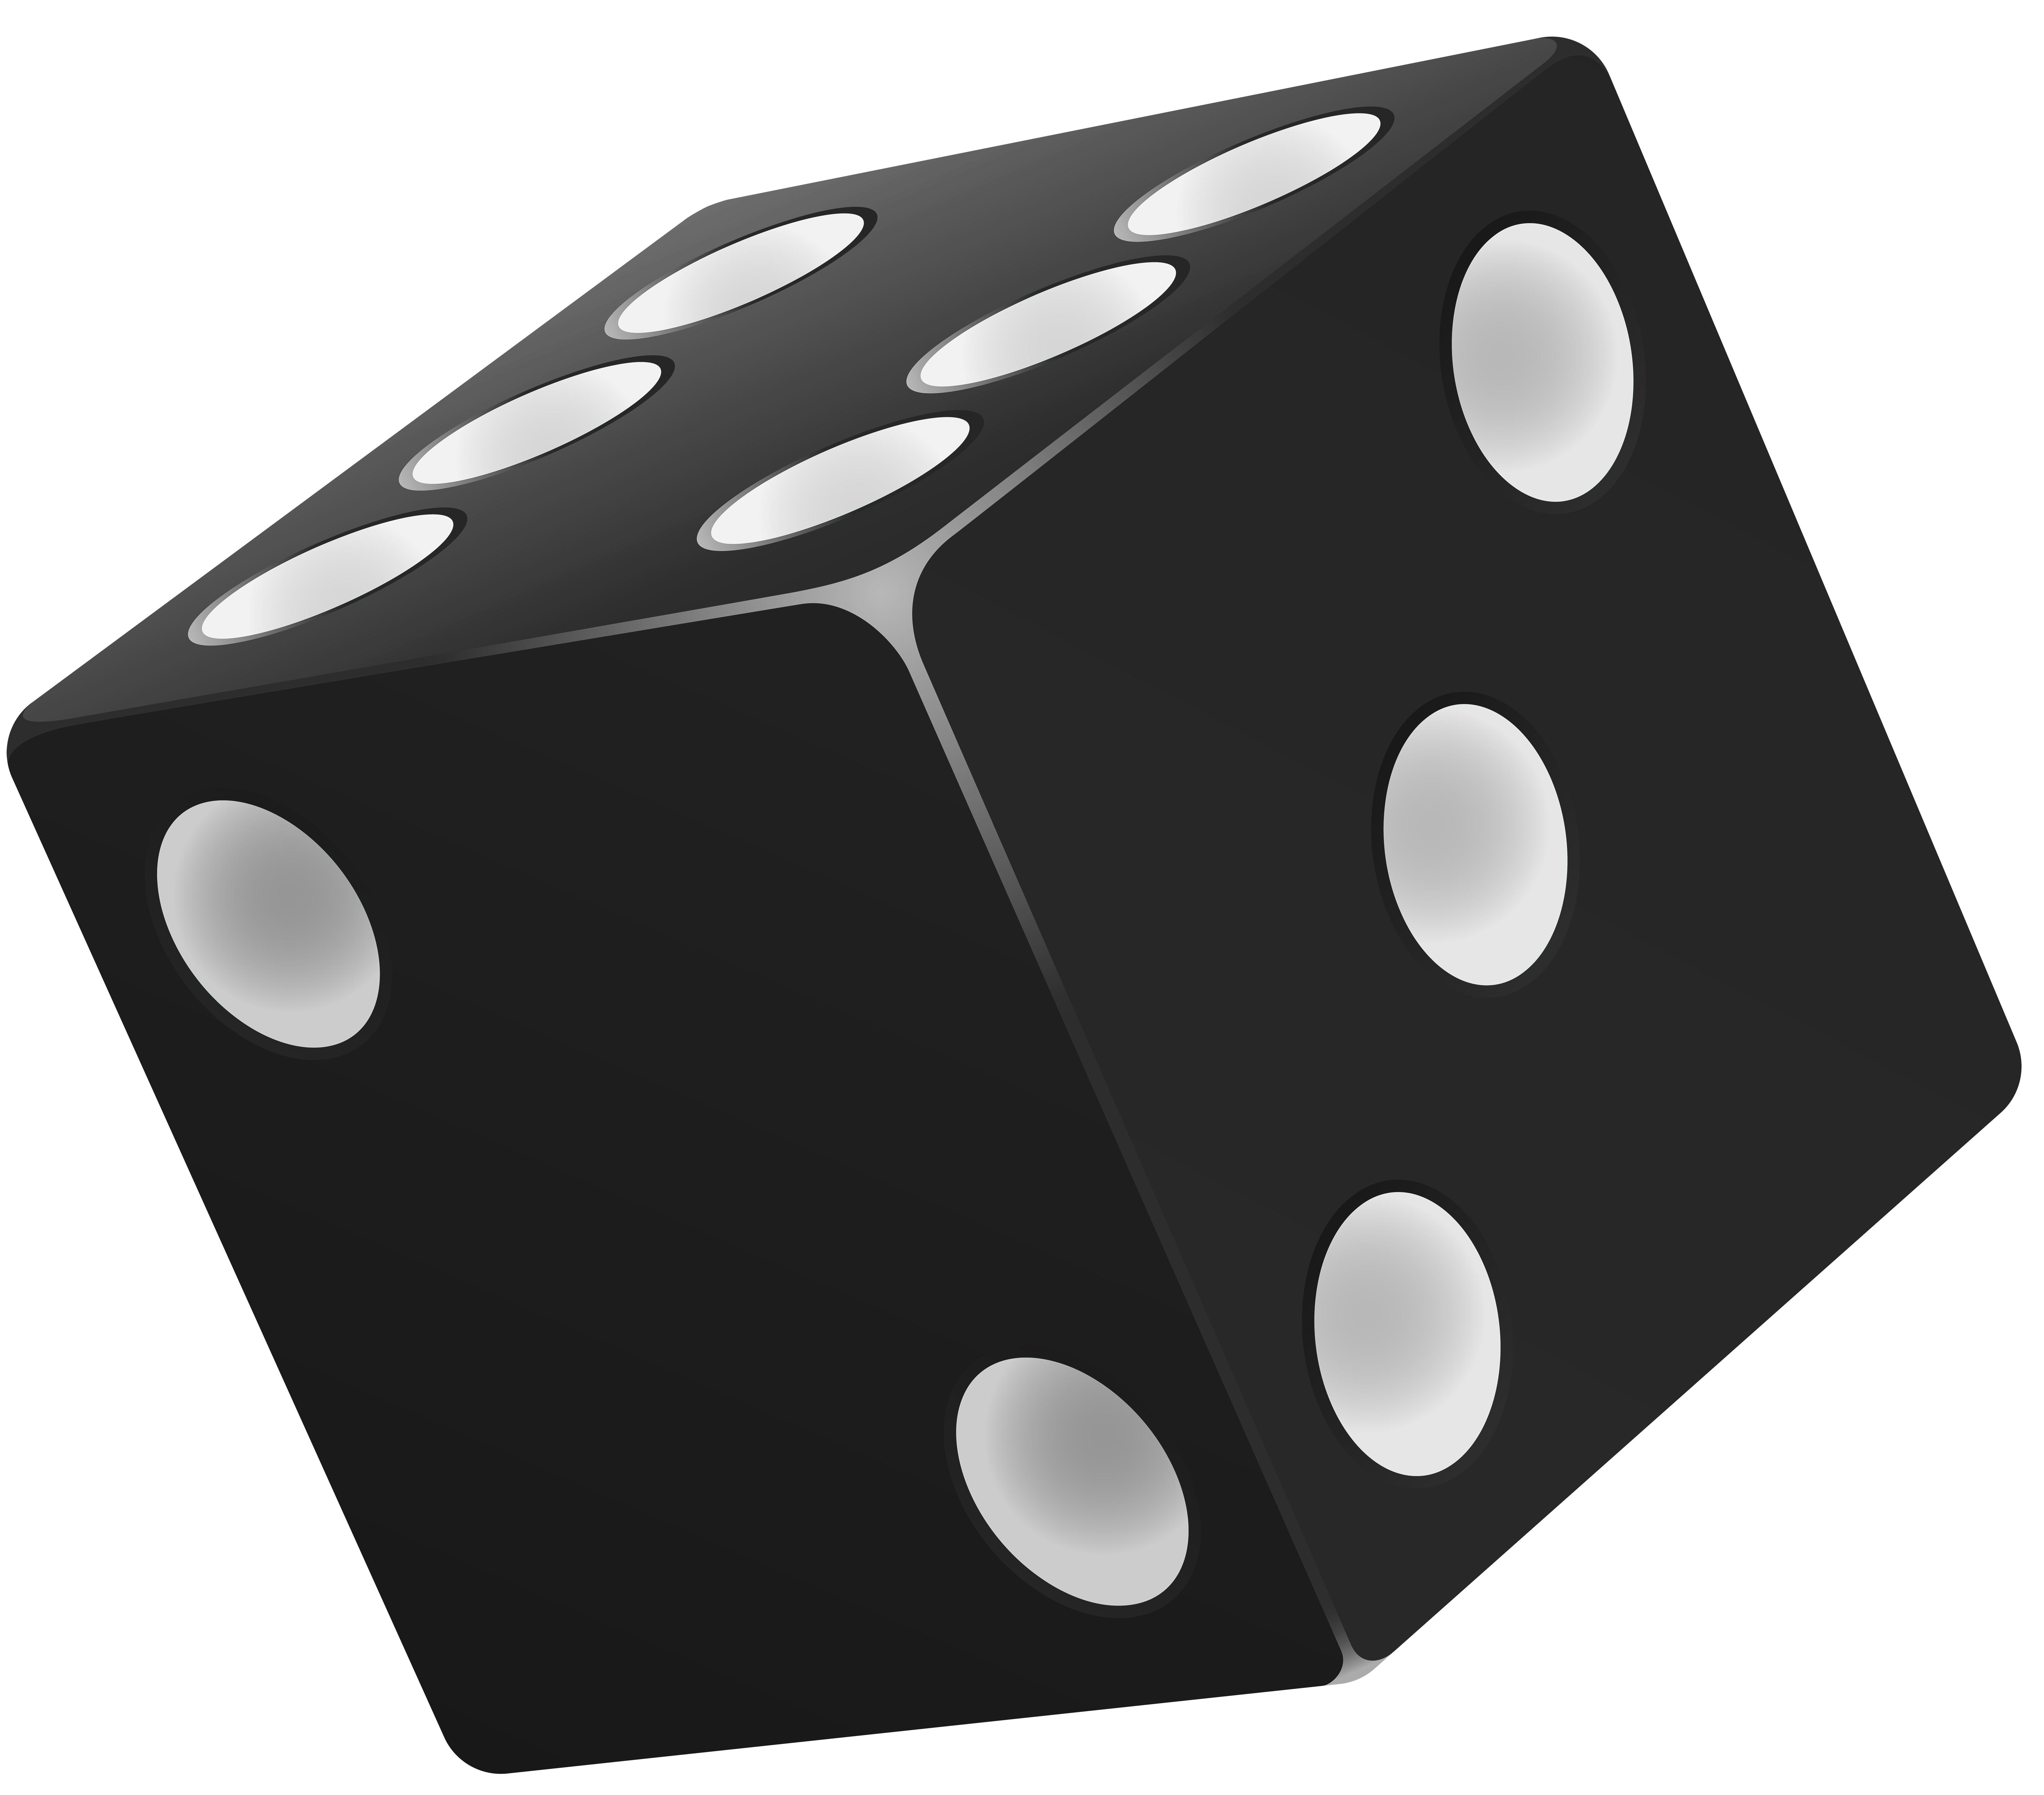 clipart library stock Dice png art best. Black clip